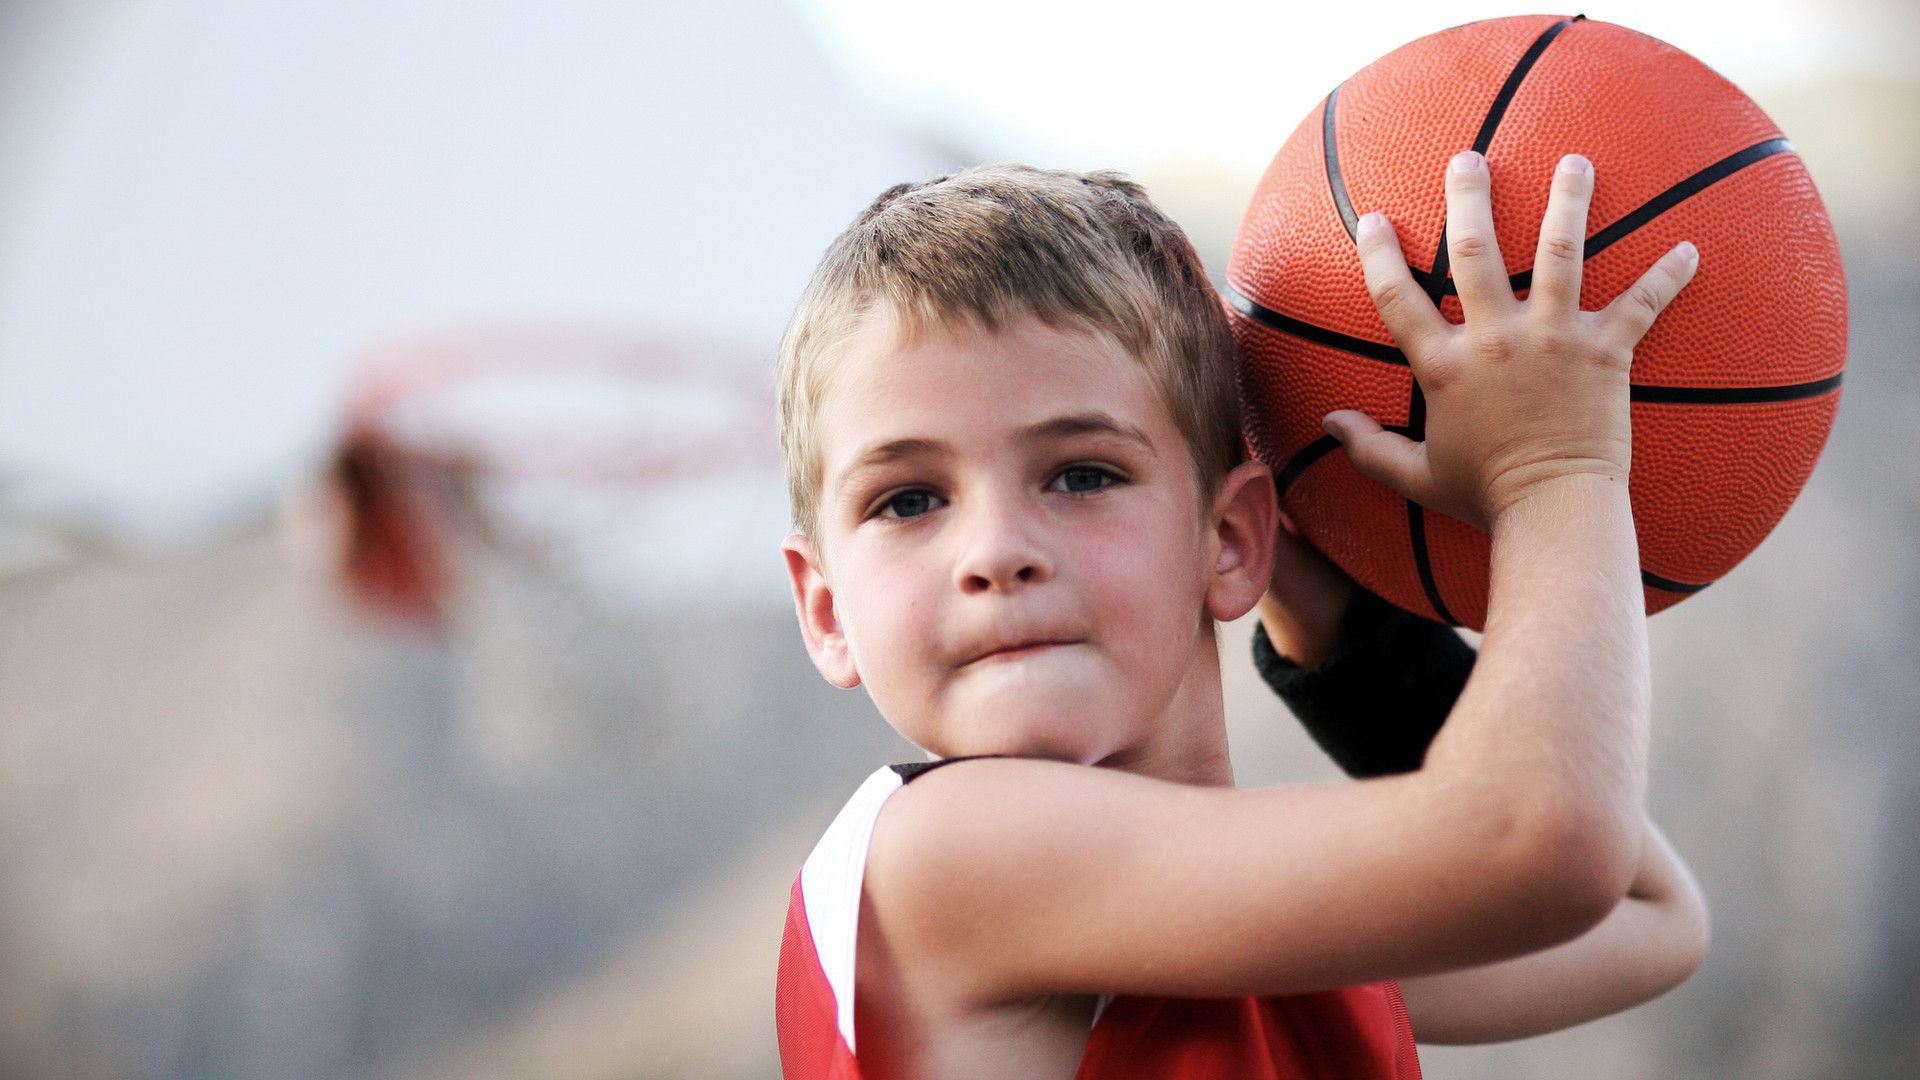 Boy Throwing Basketball